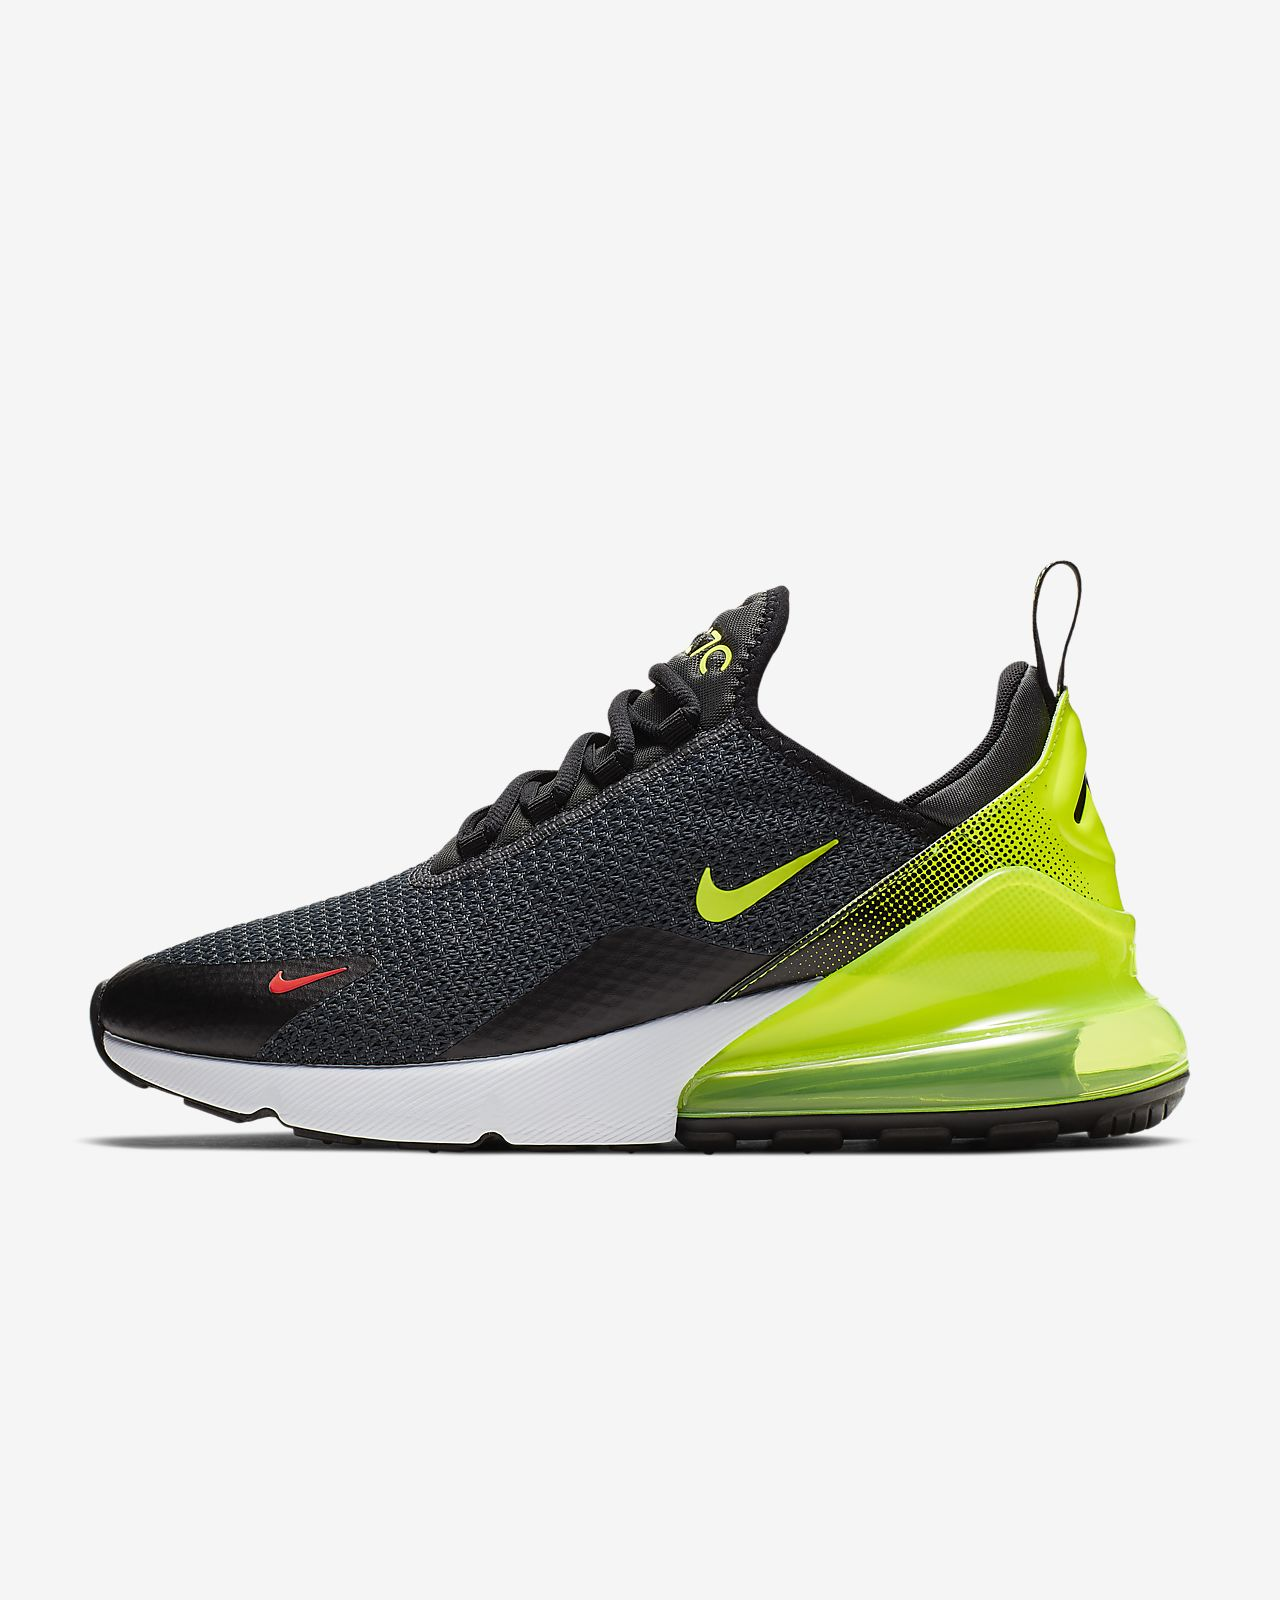 c50ebff0dc455 Nike Air Max 270 SE Men s Shoe. Nike.com